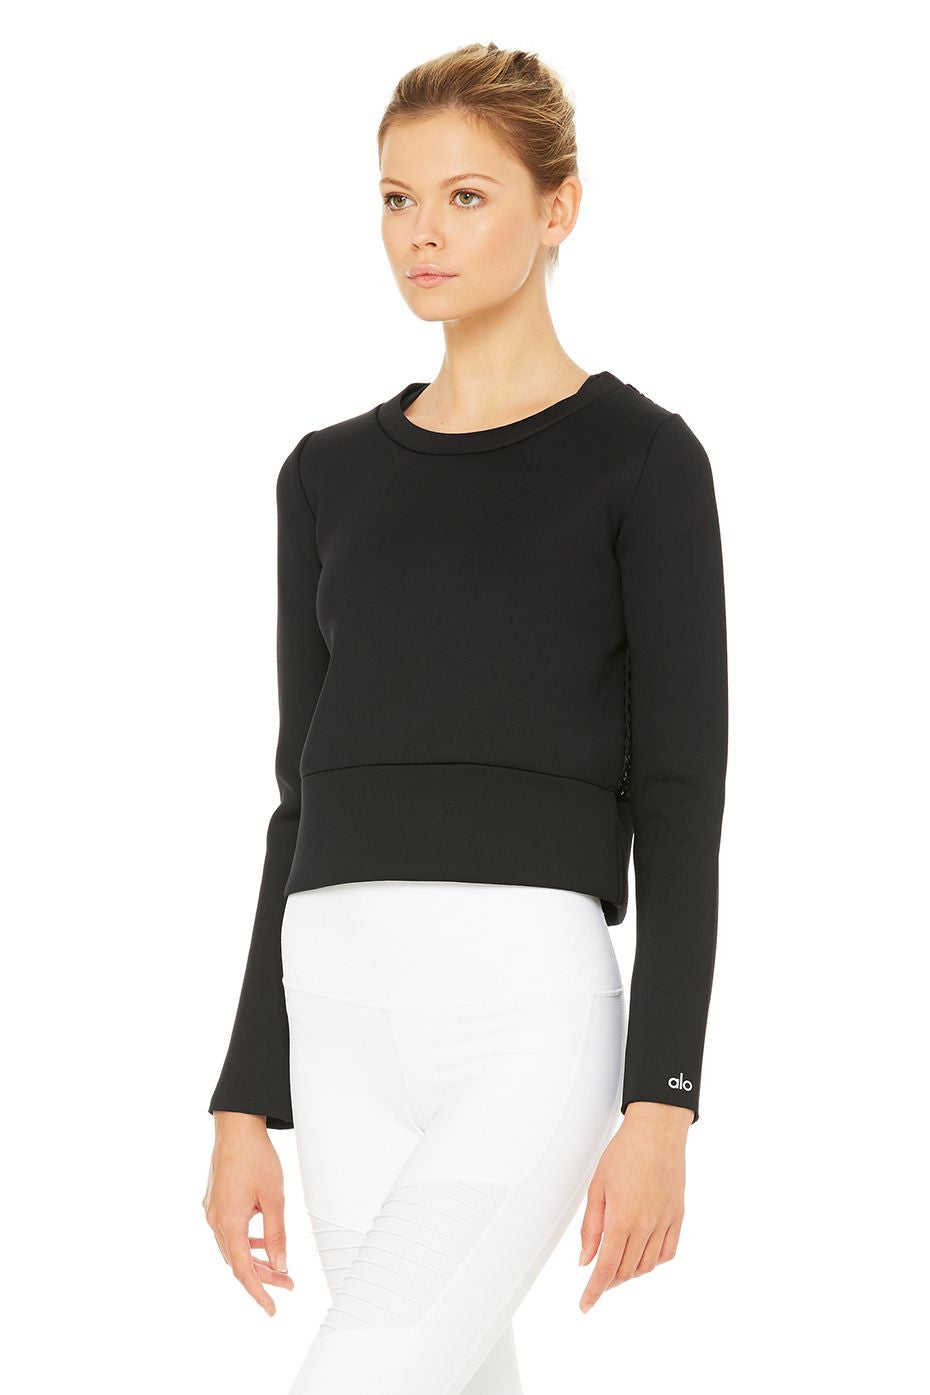 Alcove Long-Sleeved in Black